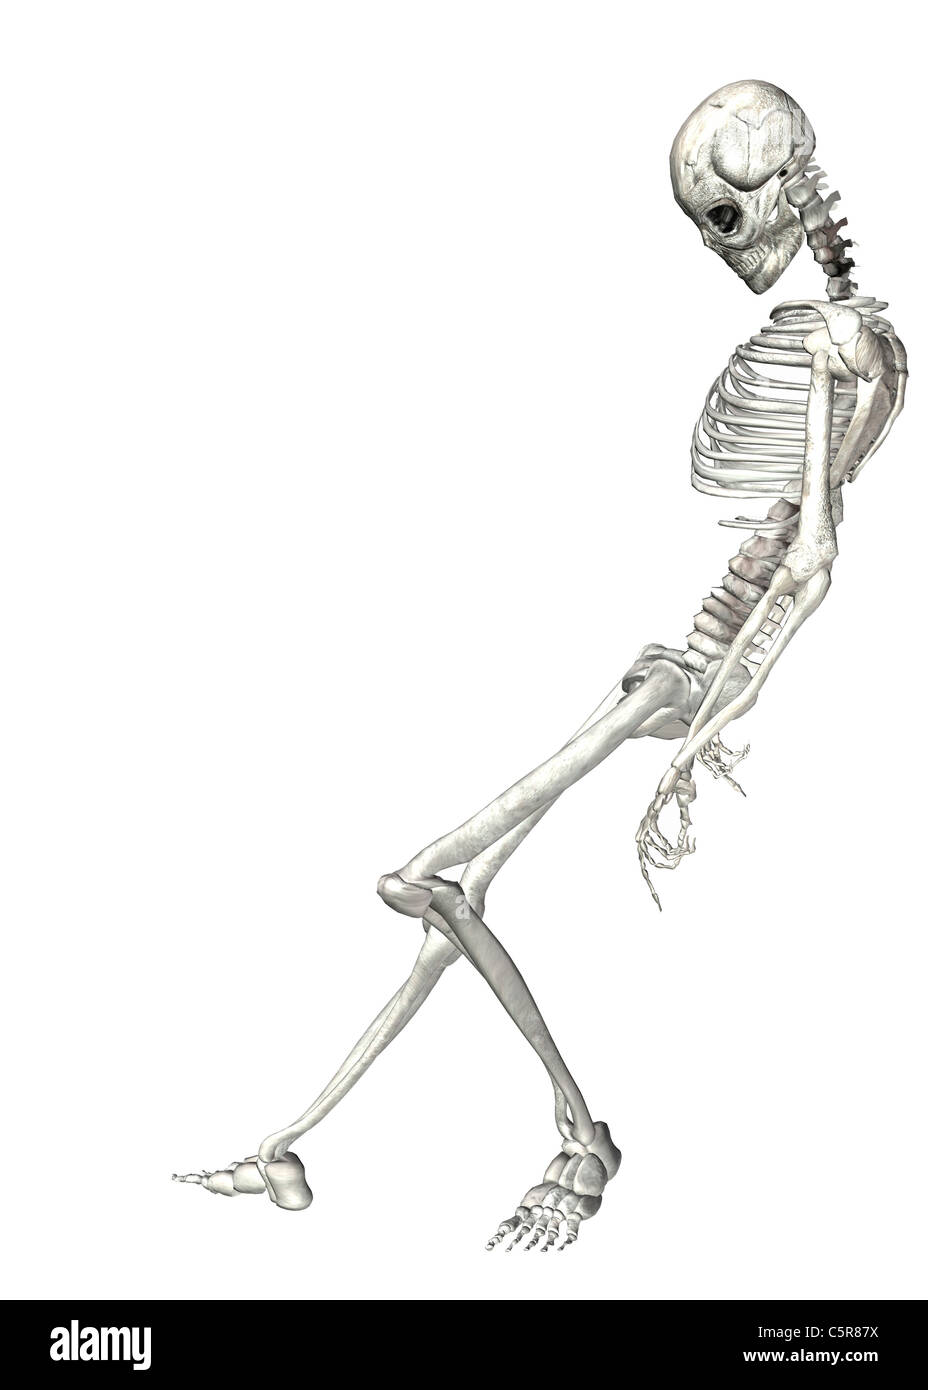 Illustration of a Skeleton leaning against something on a white ...